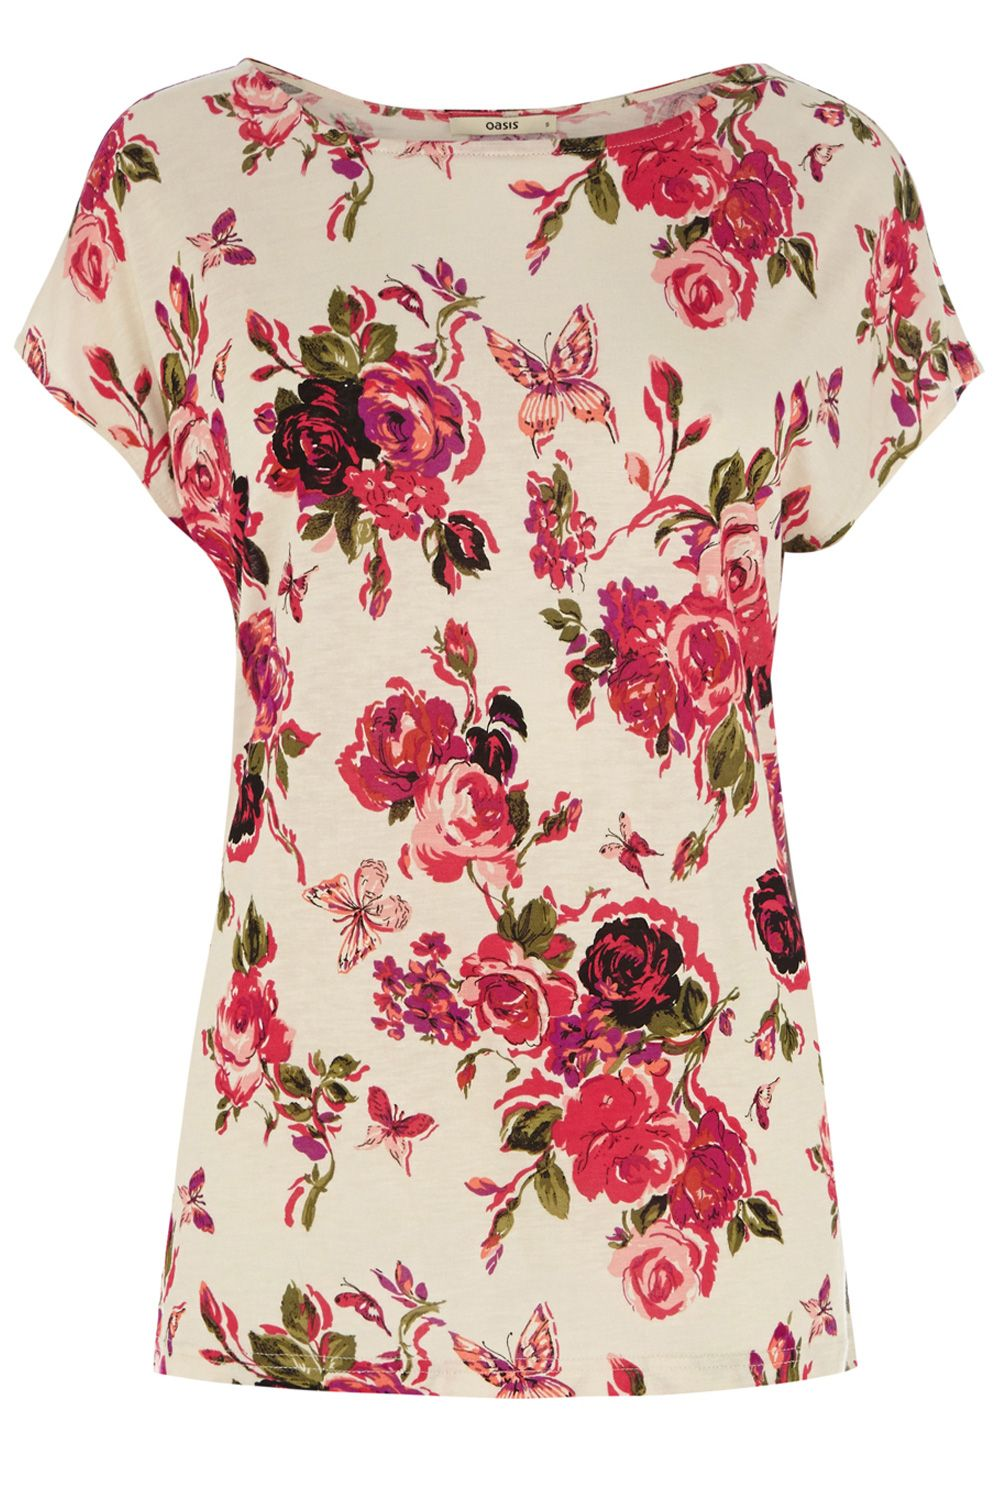 Divine rose printed t-shirt